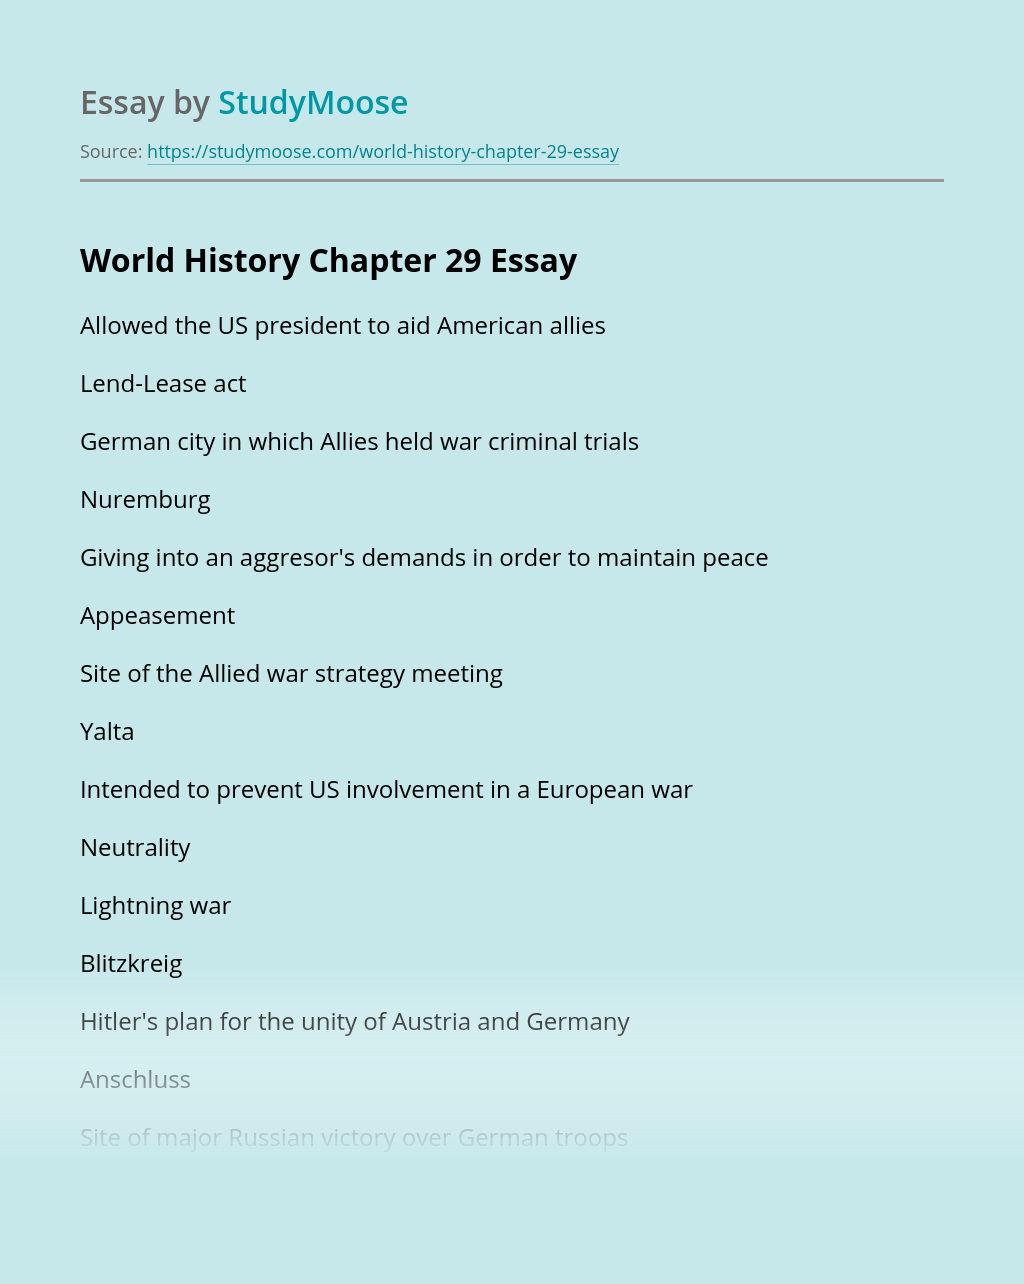 World History Chapter 29